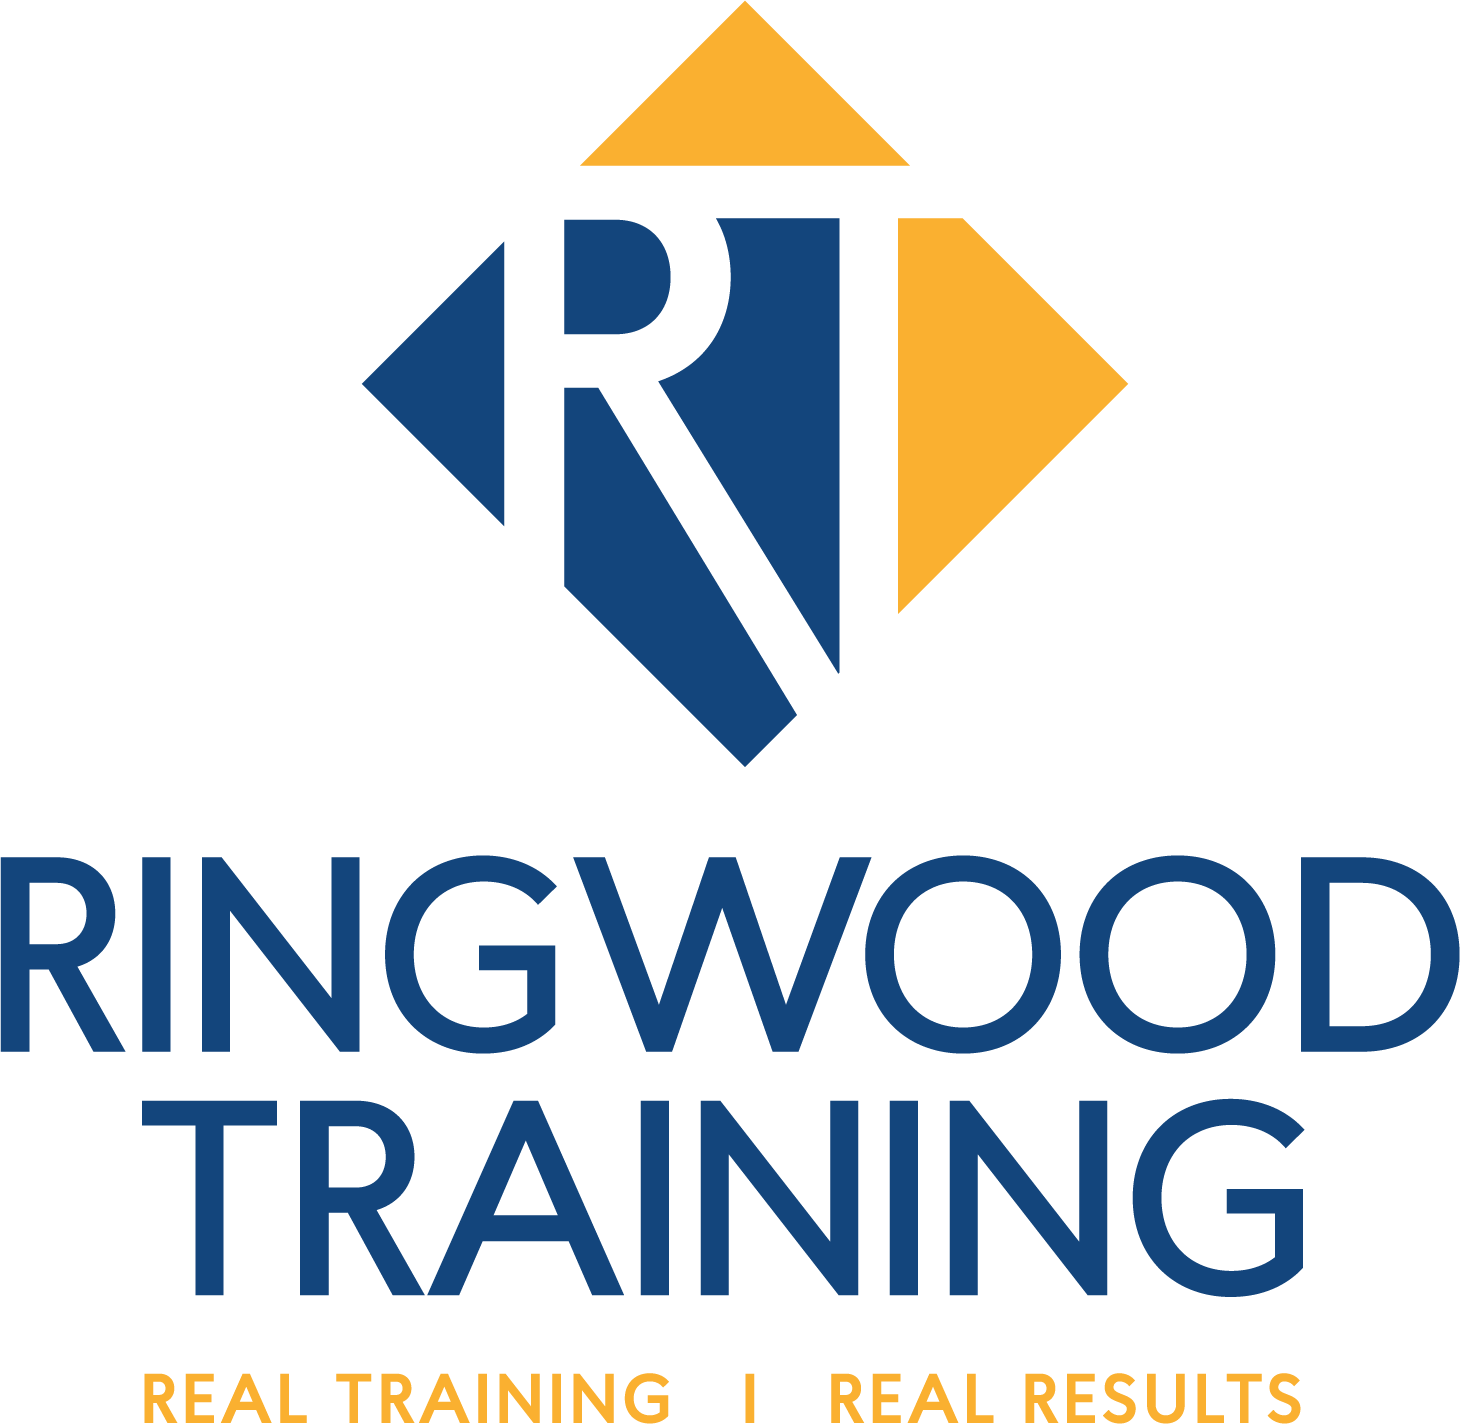 Car Show at Ringwood SC/Ringwood Training on Sat 18 March 2017 - RT - Ringwood Training